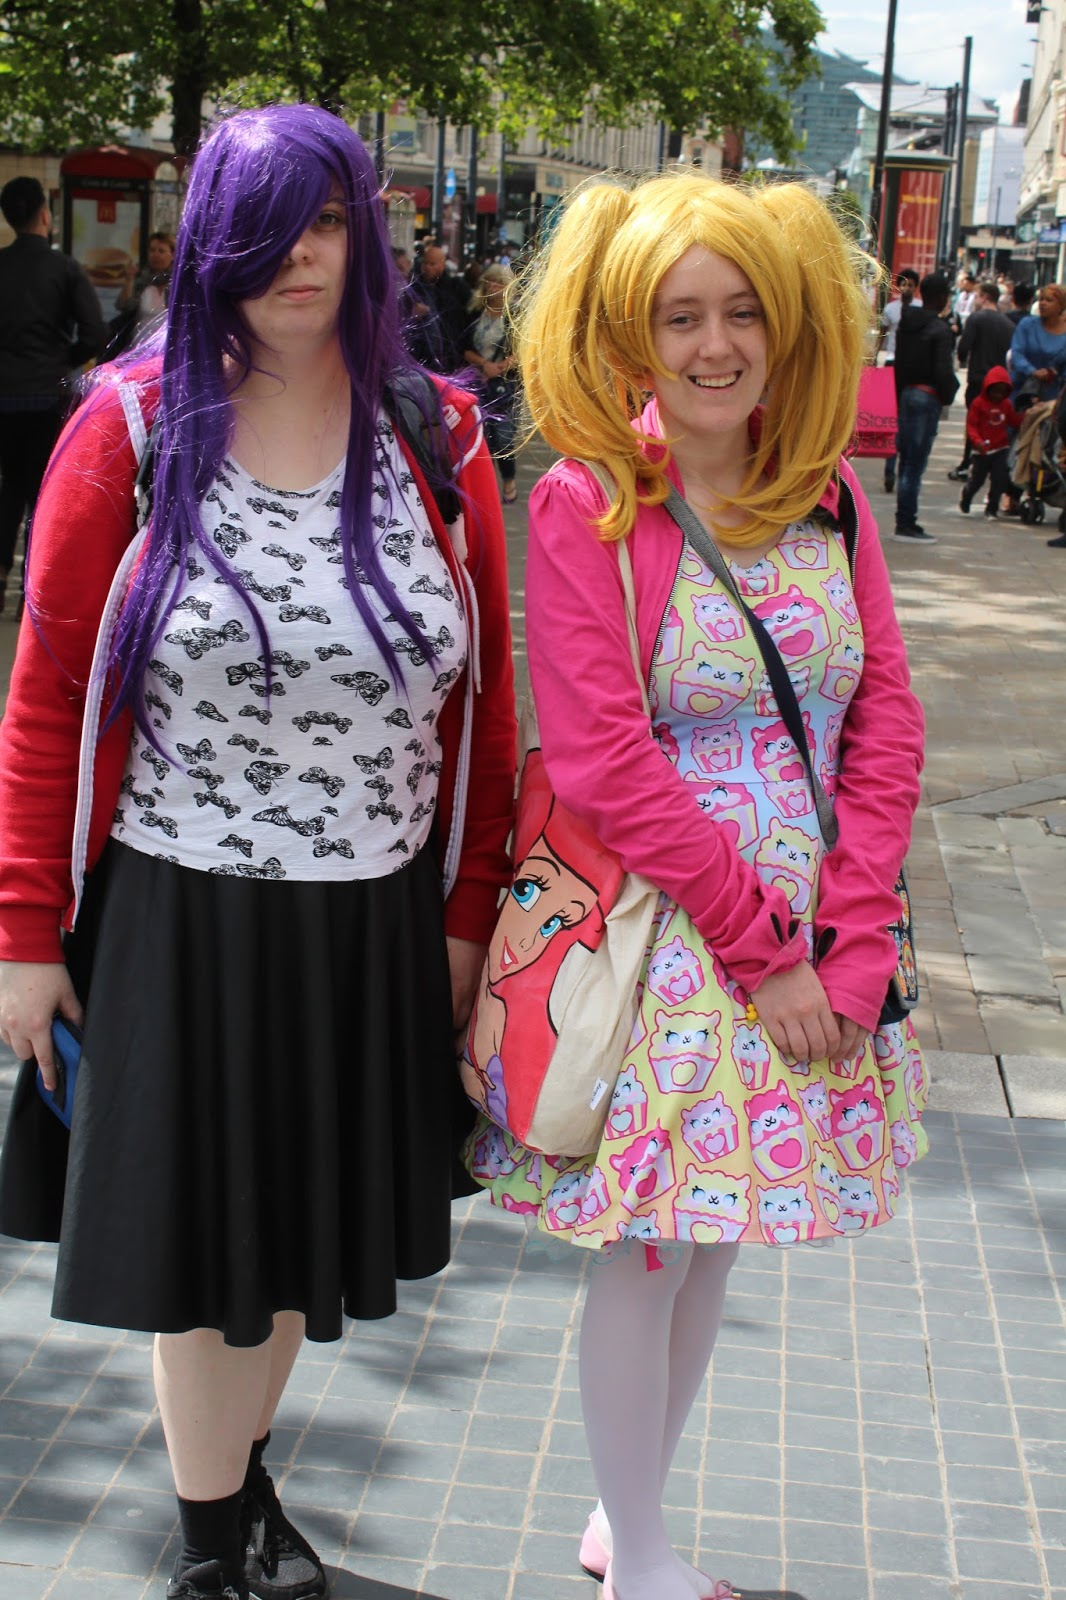 cacf788ebfe We met these two when we were wondering around Manchester. Their outfits  are inspired by cosplay and Japan as there are so may different types of  fashion.